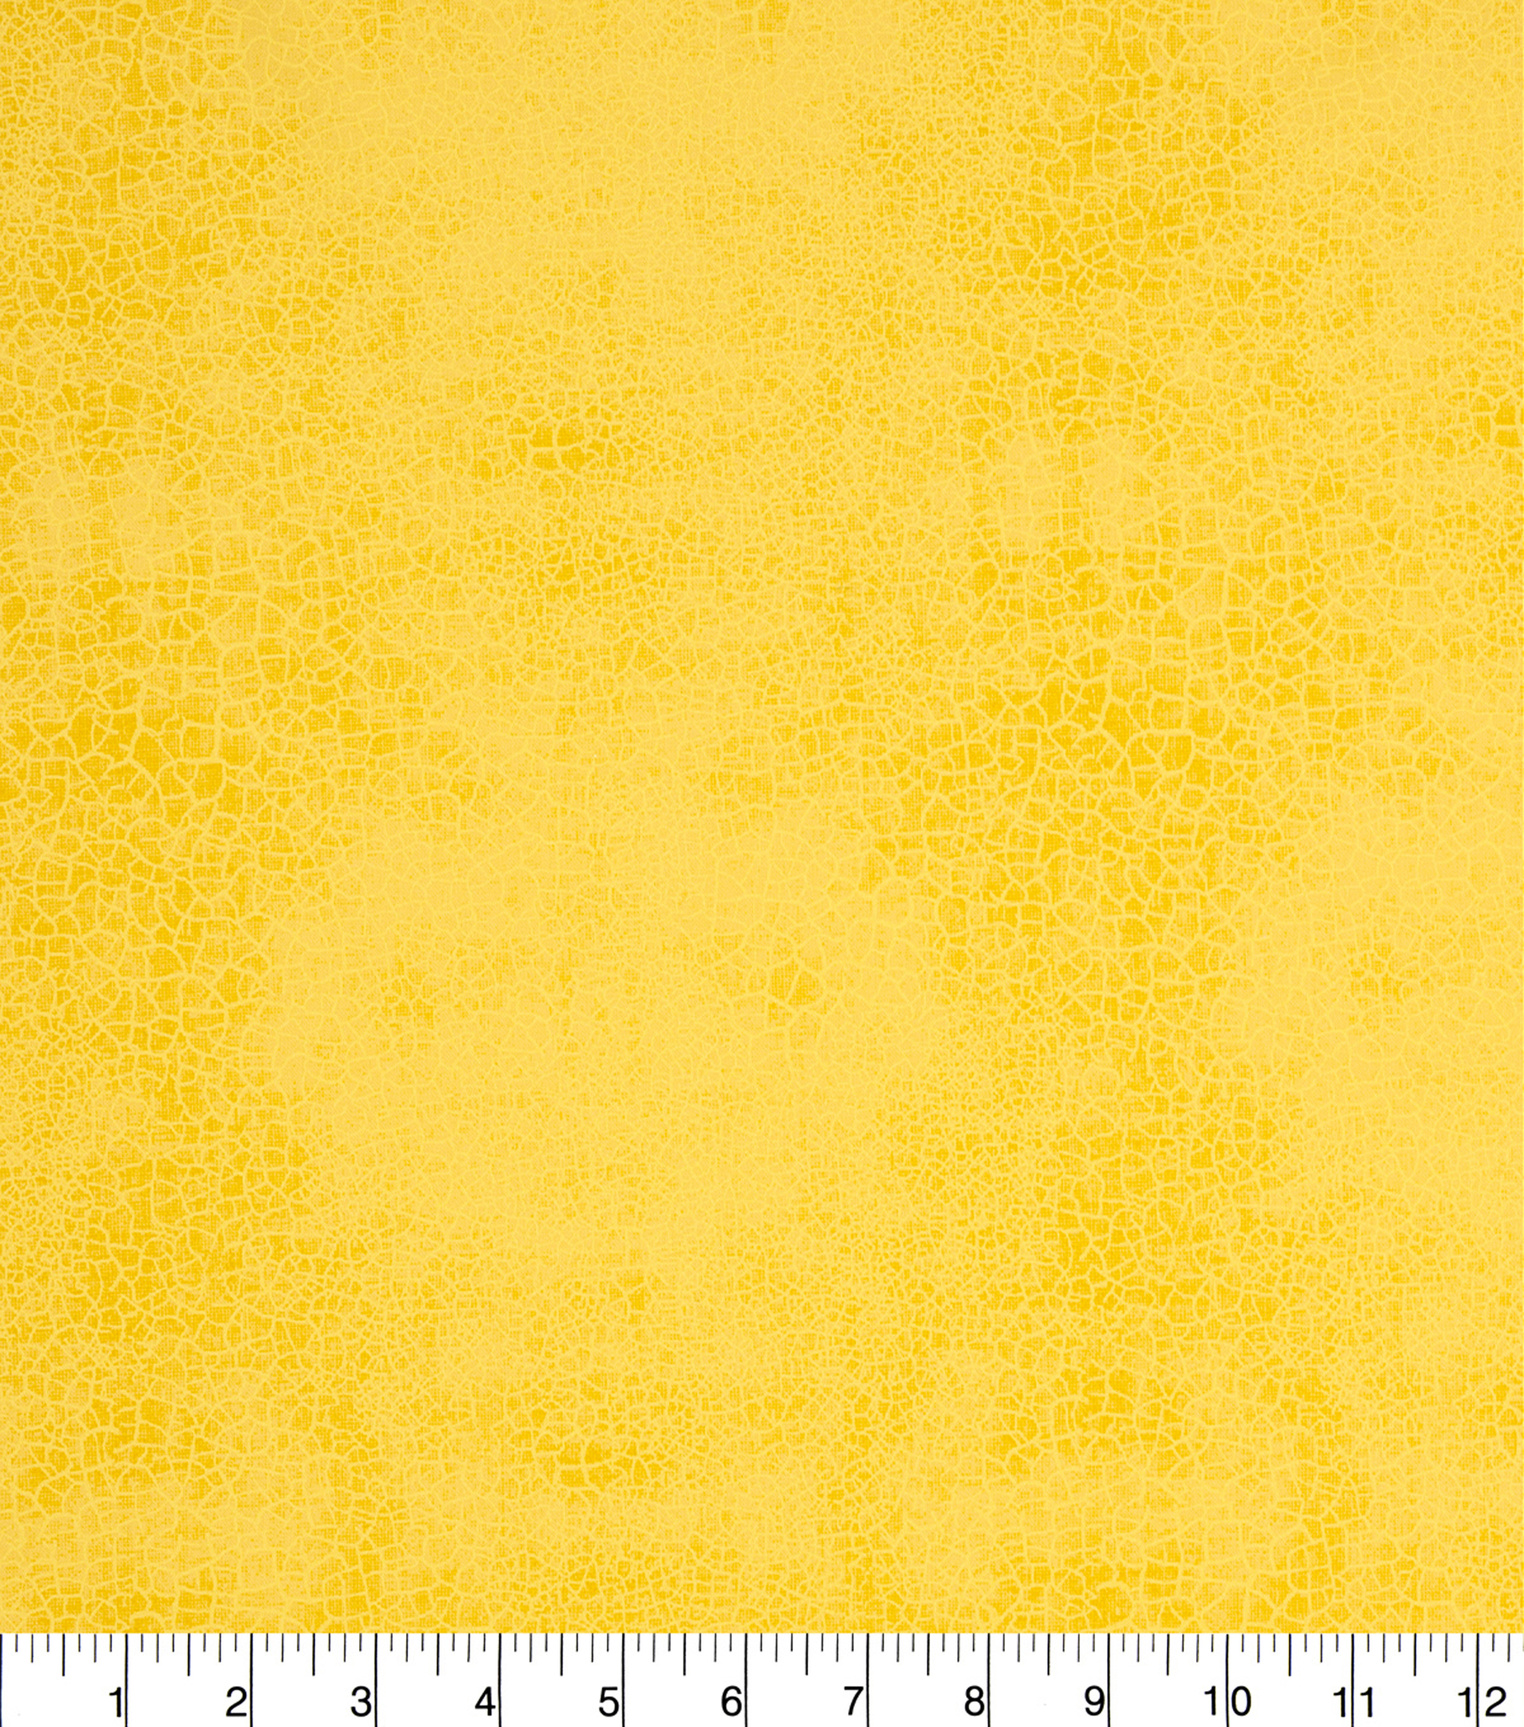 Keepsake Calico Cotton Fabric -Lemon Chrome Snake Blender